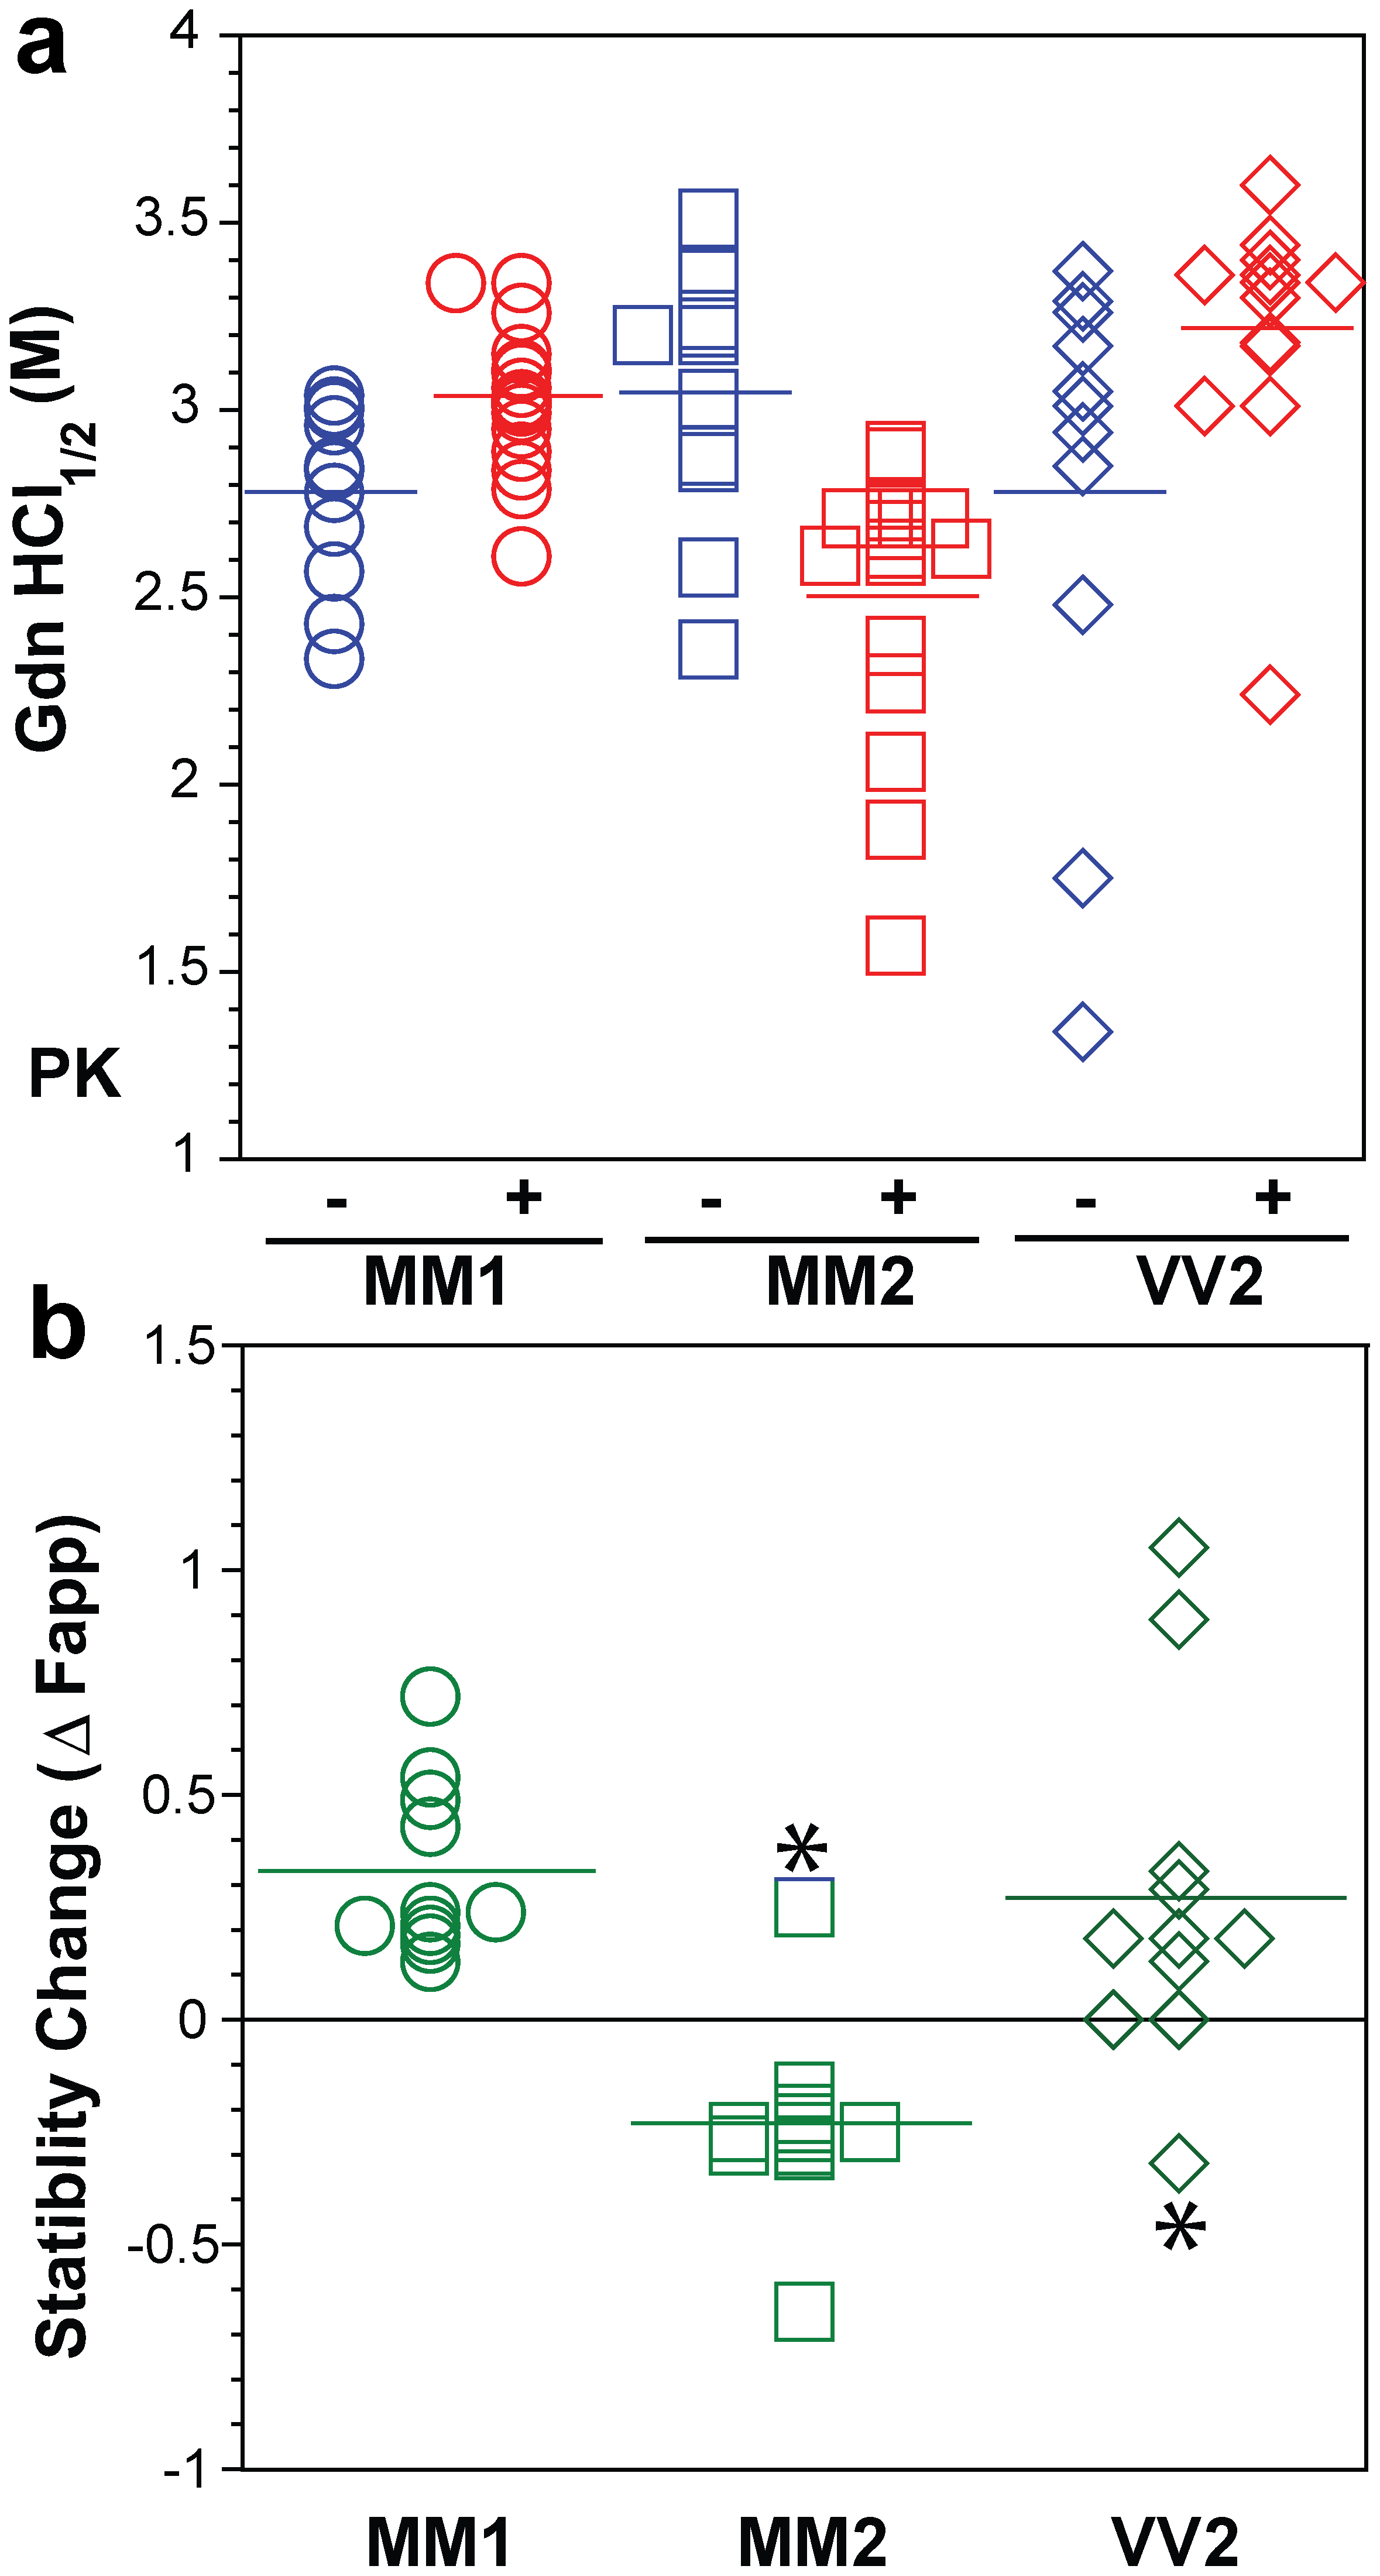 Summary data on conformational stability of PrP<sup>Sc</sup>, rPrP<sup>Sc</sup>, and change in stability induced by PK in 46 sCJD cases.